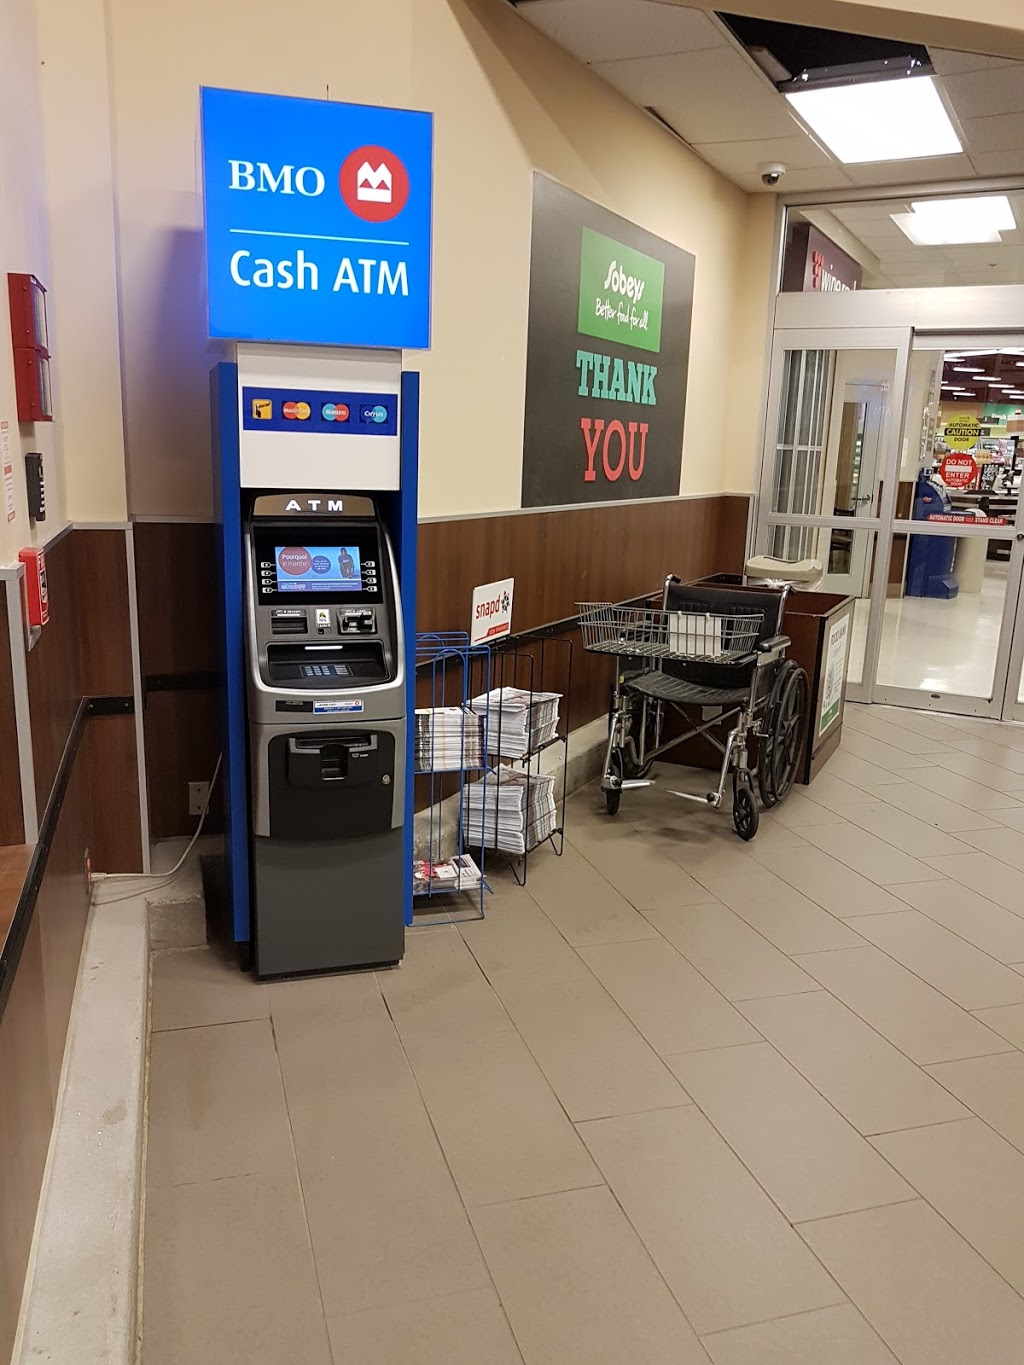 BMO Bank of Montreal ATM | atm | 640 Parkside Dr, Waterloo, ON N2L 5V4, Canada | 8003639992 OR +1 800-363-9992